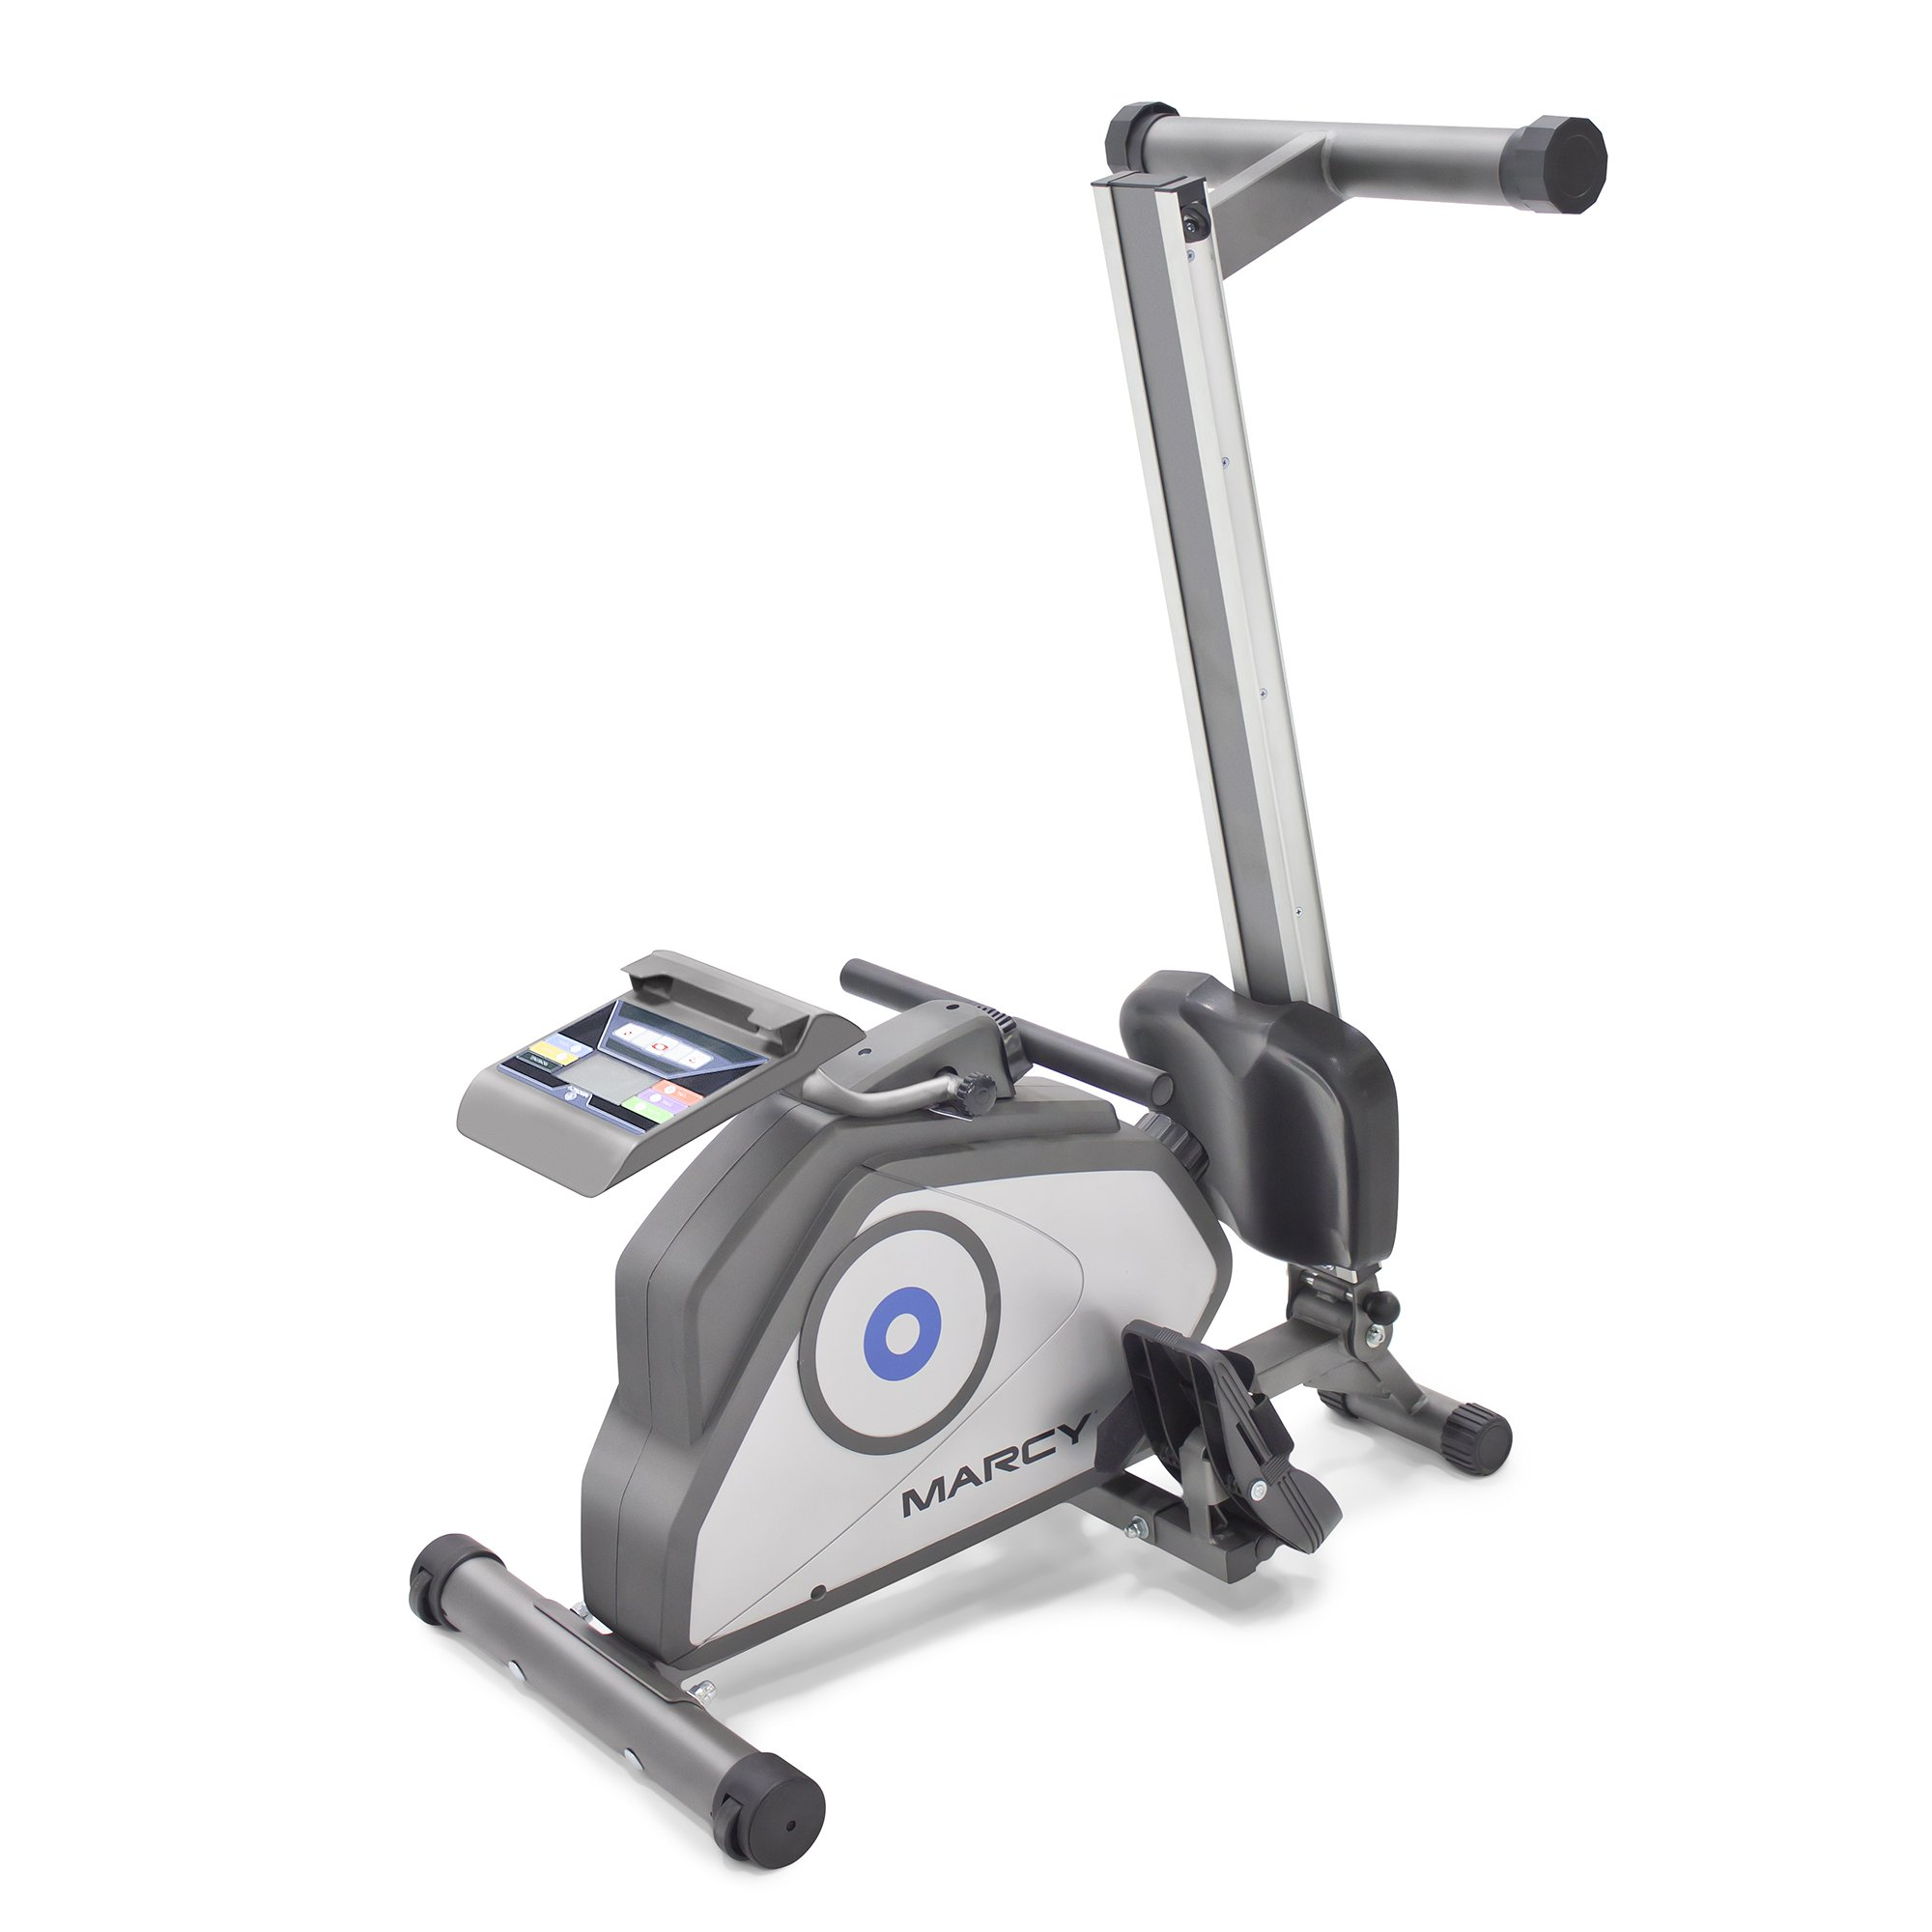 Marcy Foldable 8-Level Magnetic Resistance Rowing Machine with Transport Wheels NS-40503RW by Marcy (Image #3)